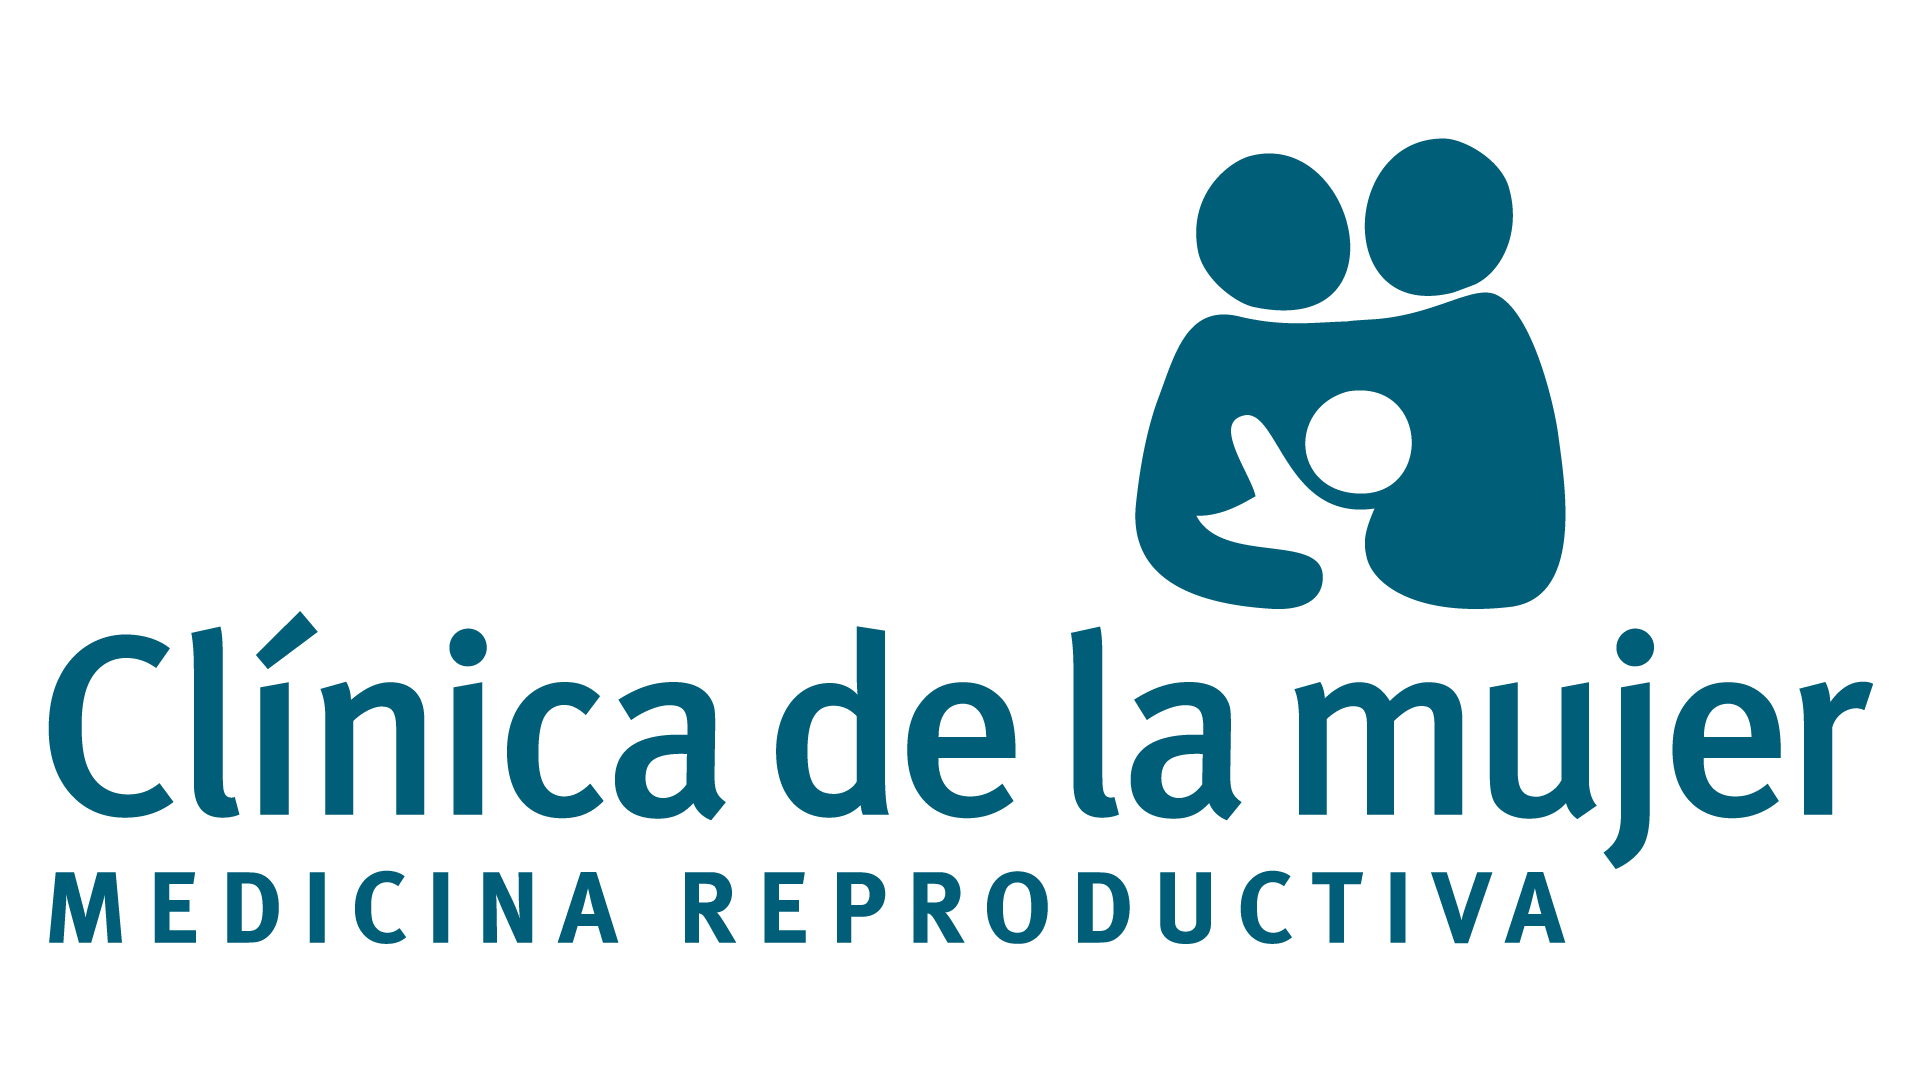 Clinica Mujer